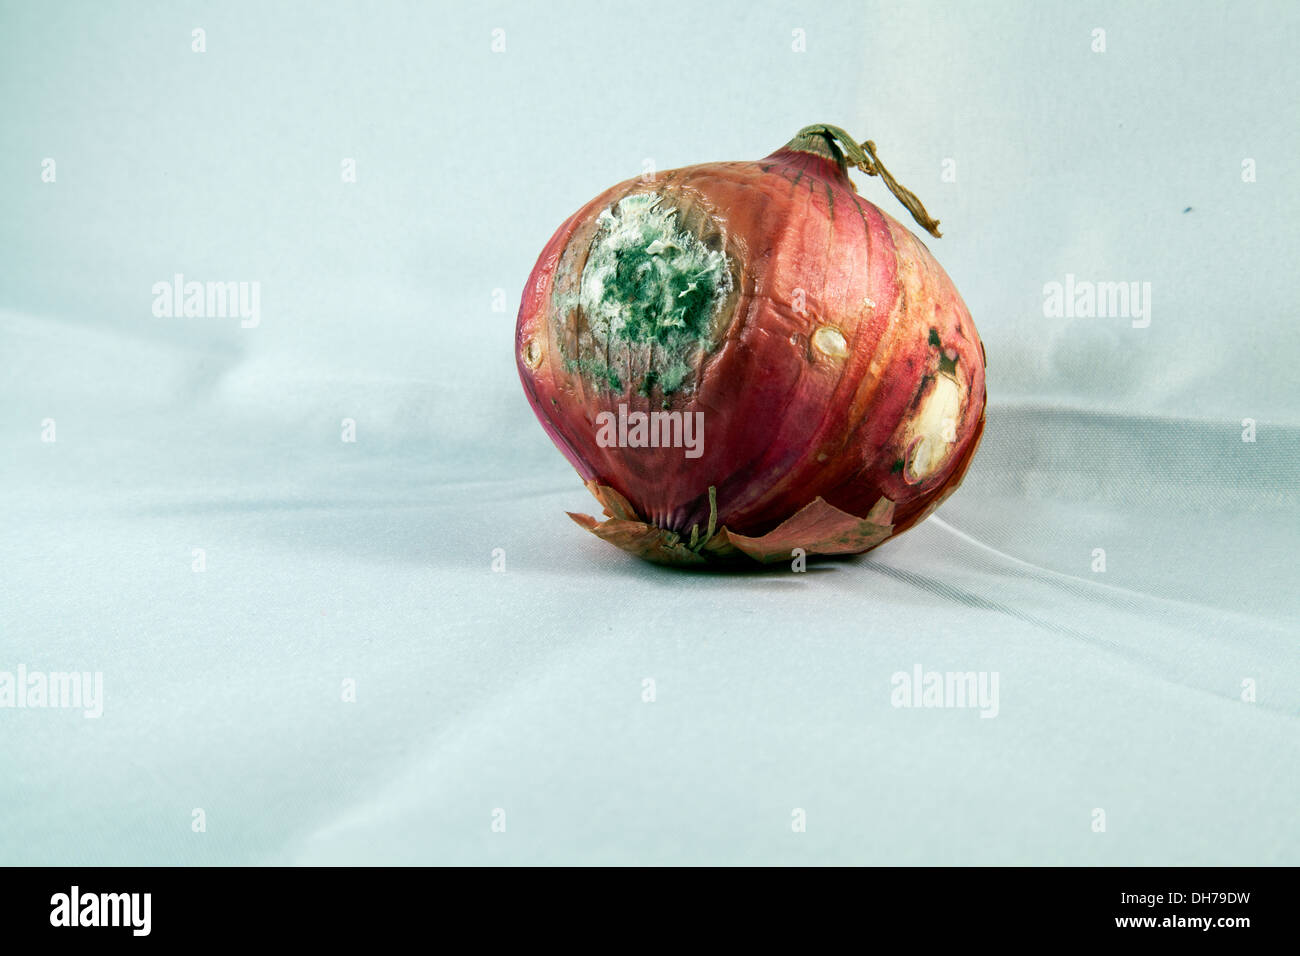 Mouldy Onion - Stock Image